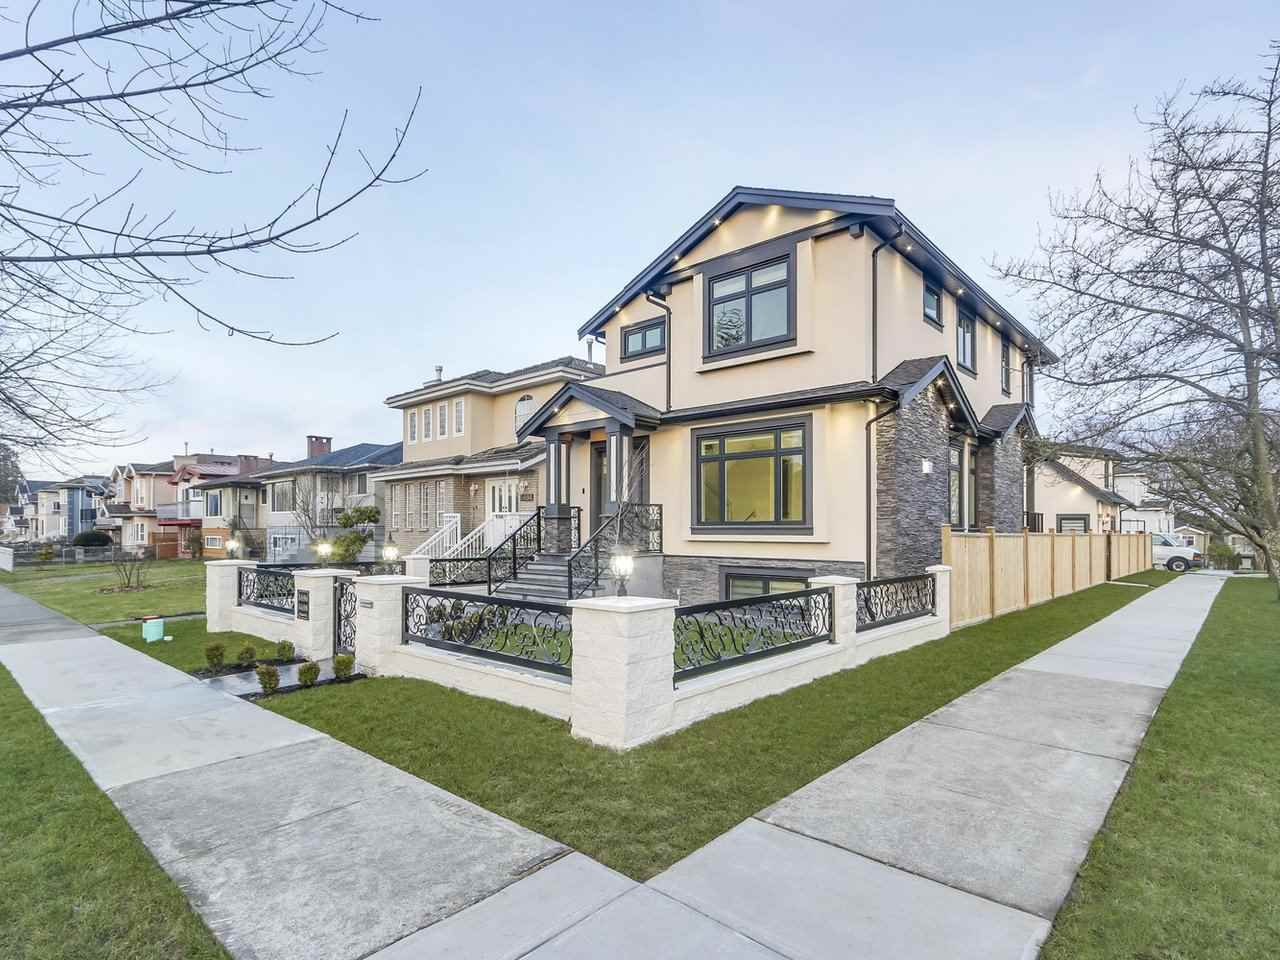 Main Photo: 5498 BRUCE Street in Vancouver: Victoria VE House for sale (Vancouver East)  : MLS®# R2333476